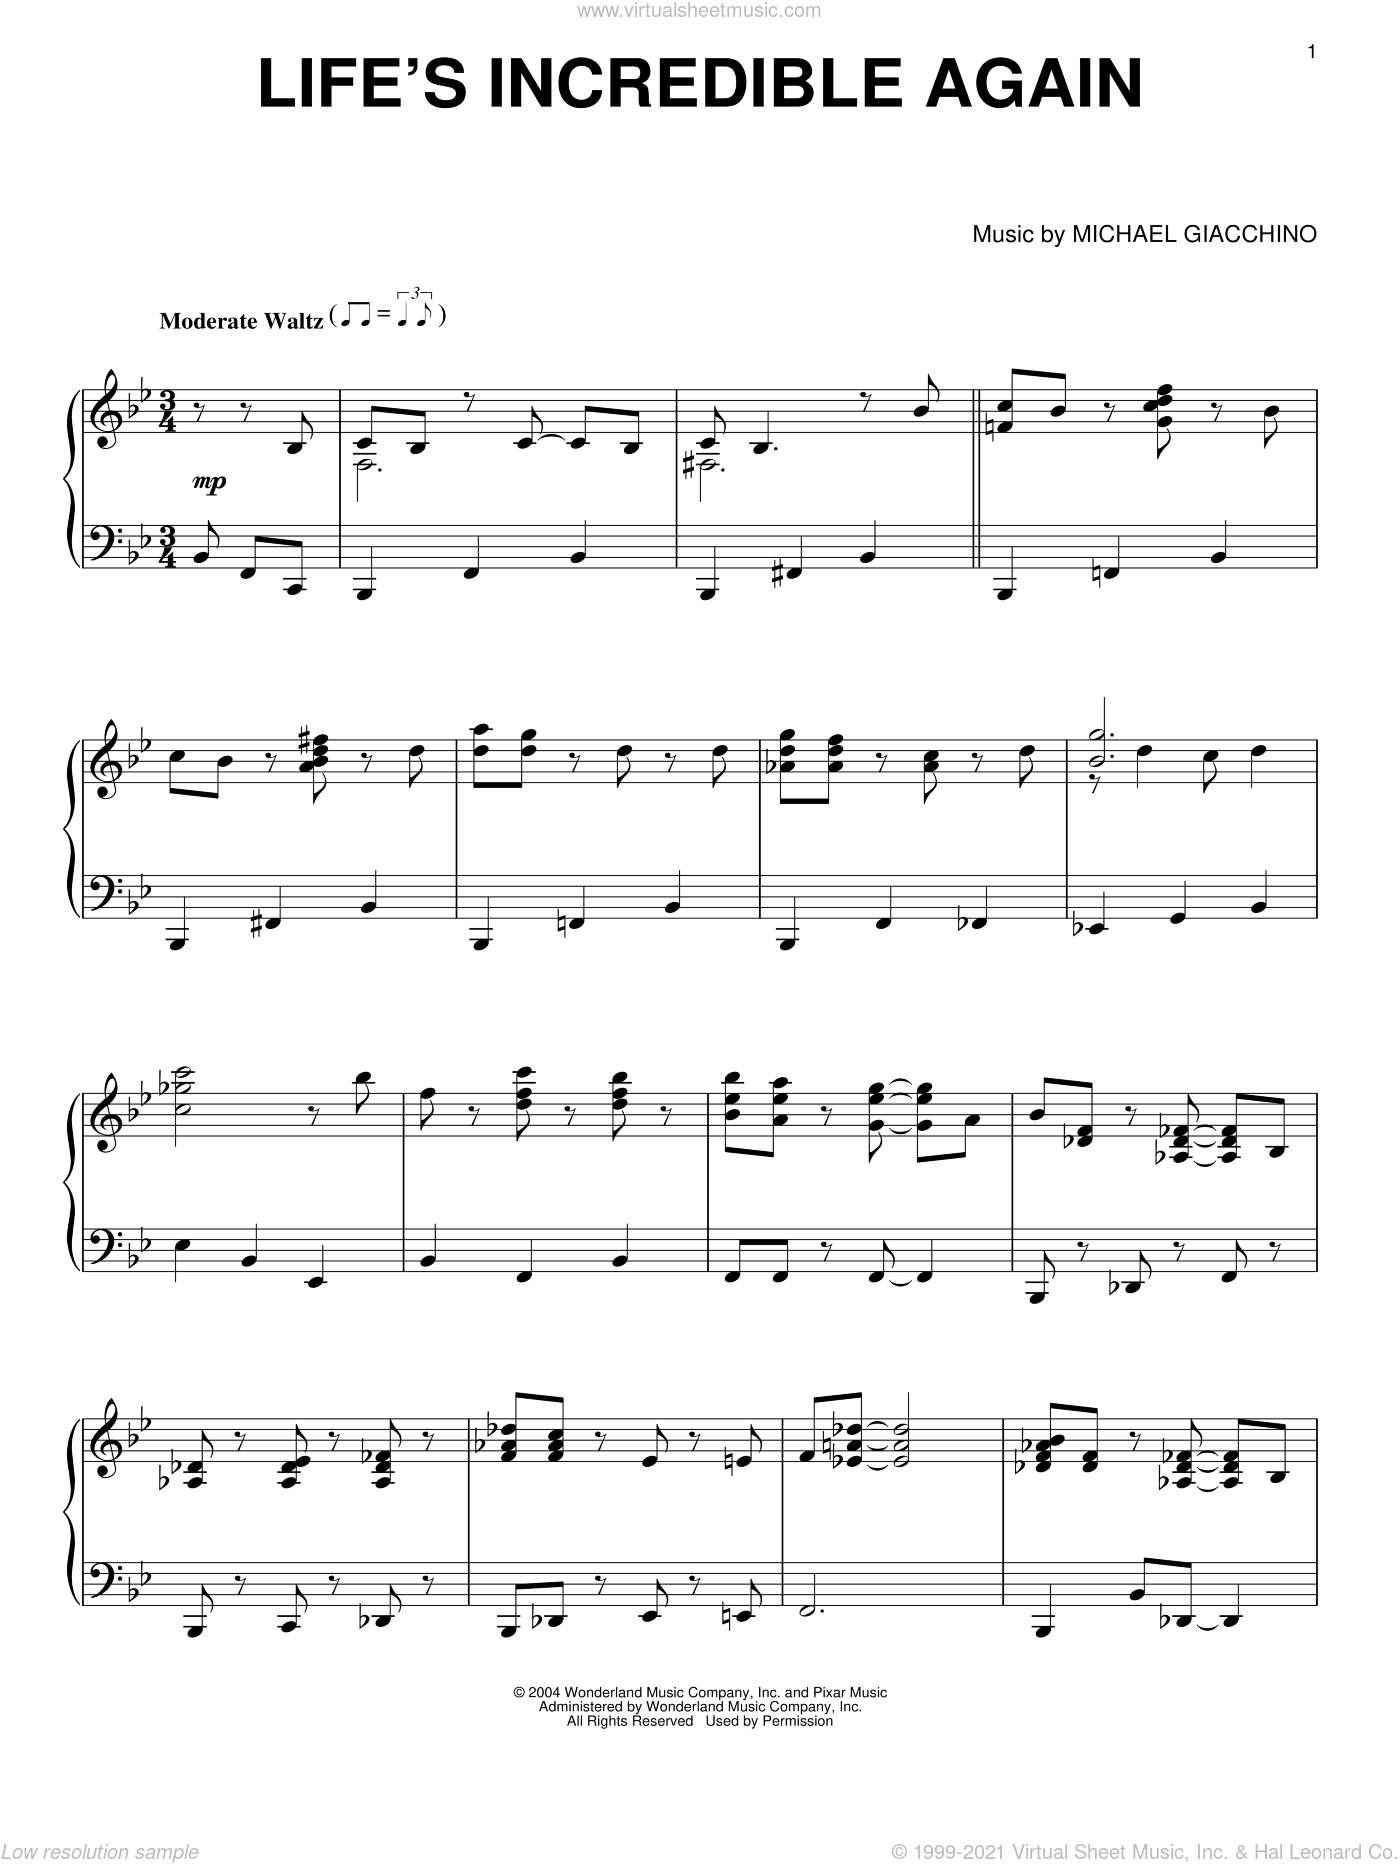 Life's Incredible Again sheet music for piano solo by Michael Giacchino. Score Image Preview.